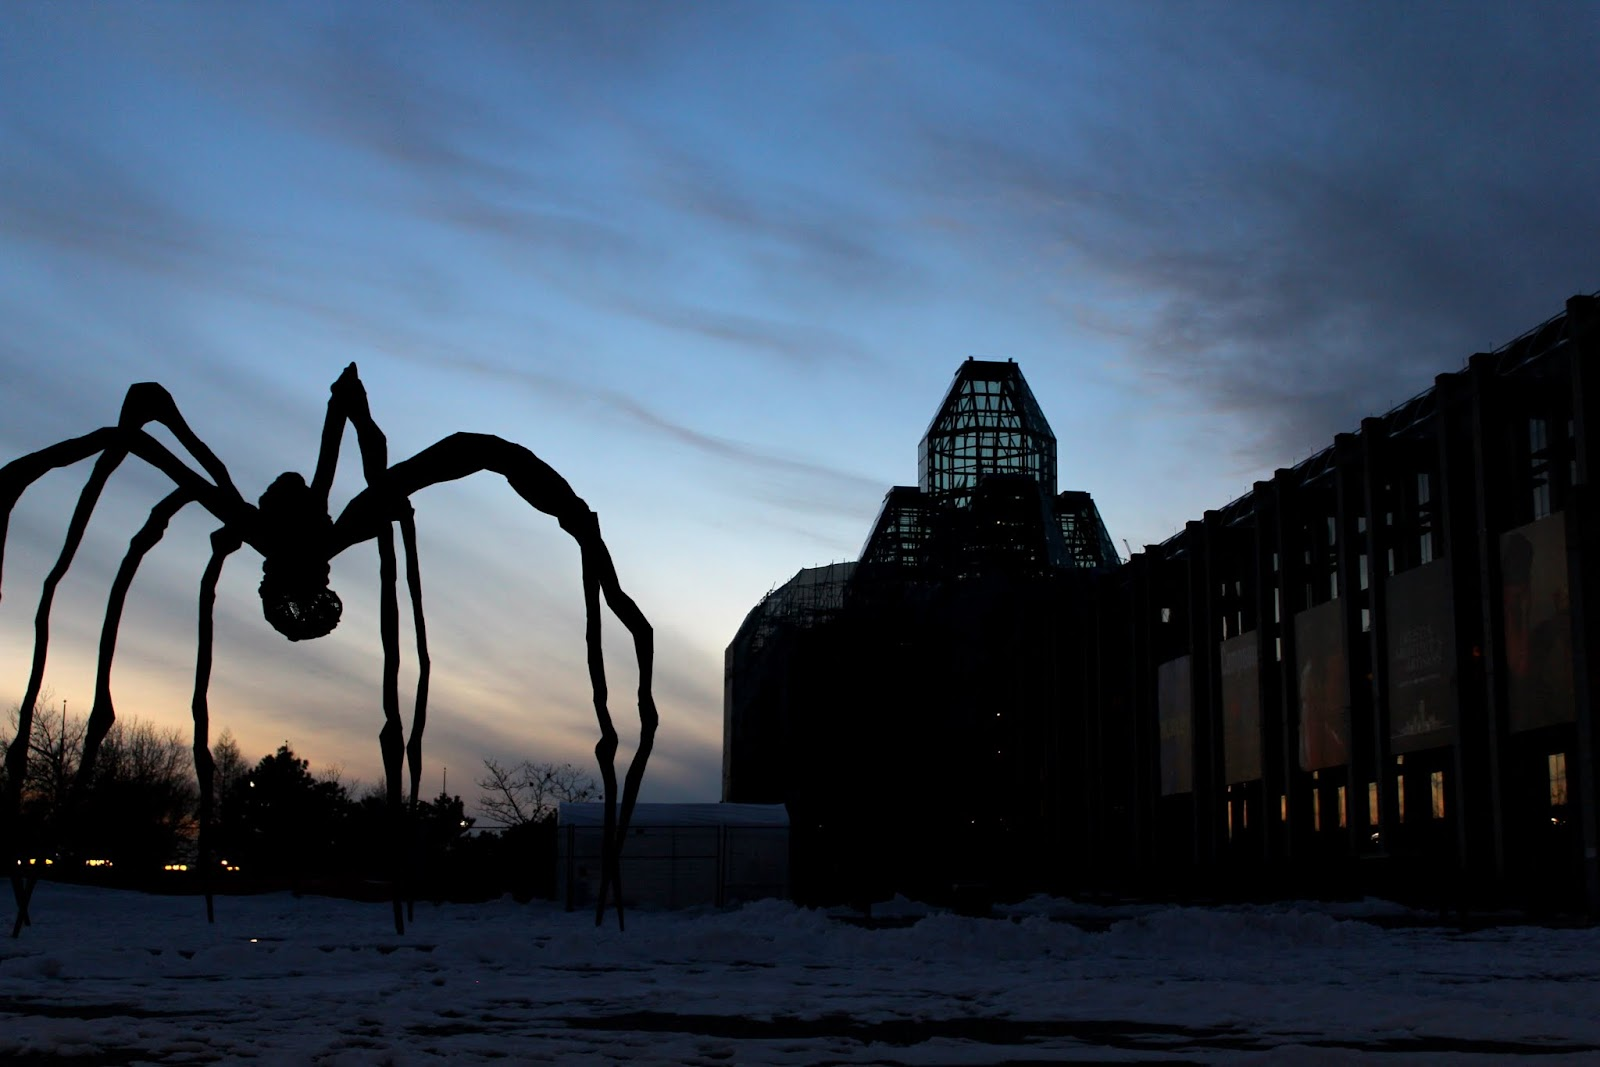 Maman and National Gallery of Canada, Ottawa, Ontario, Canada silouetted against sunset